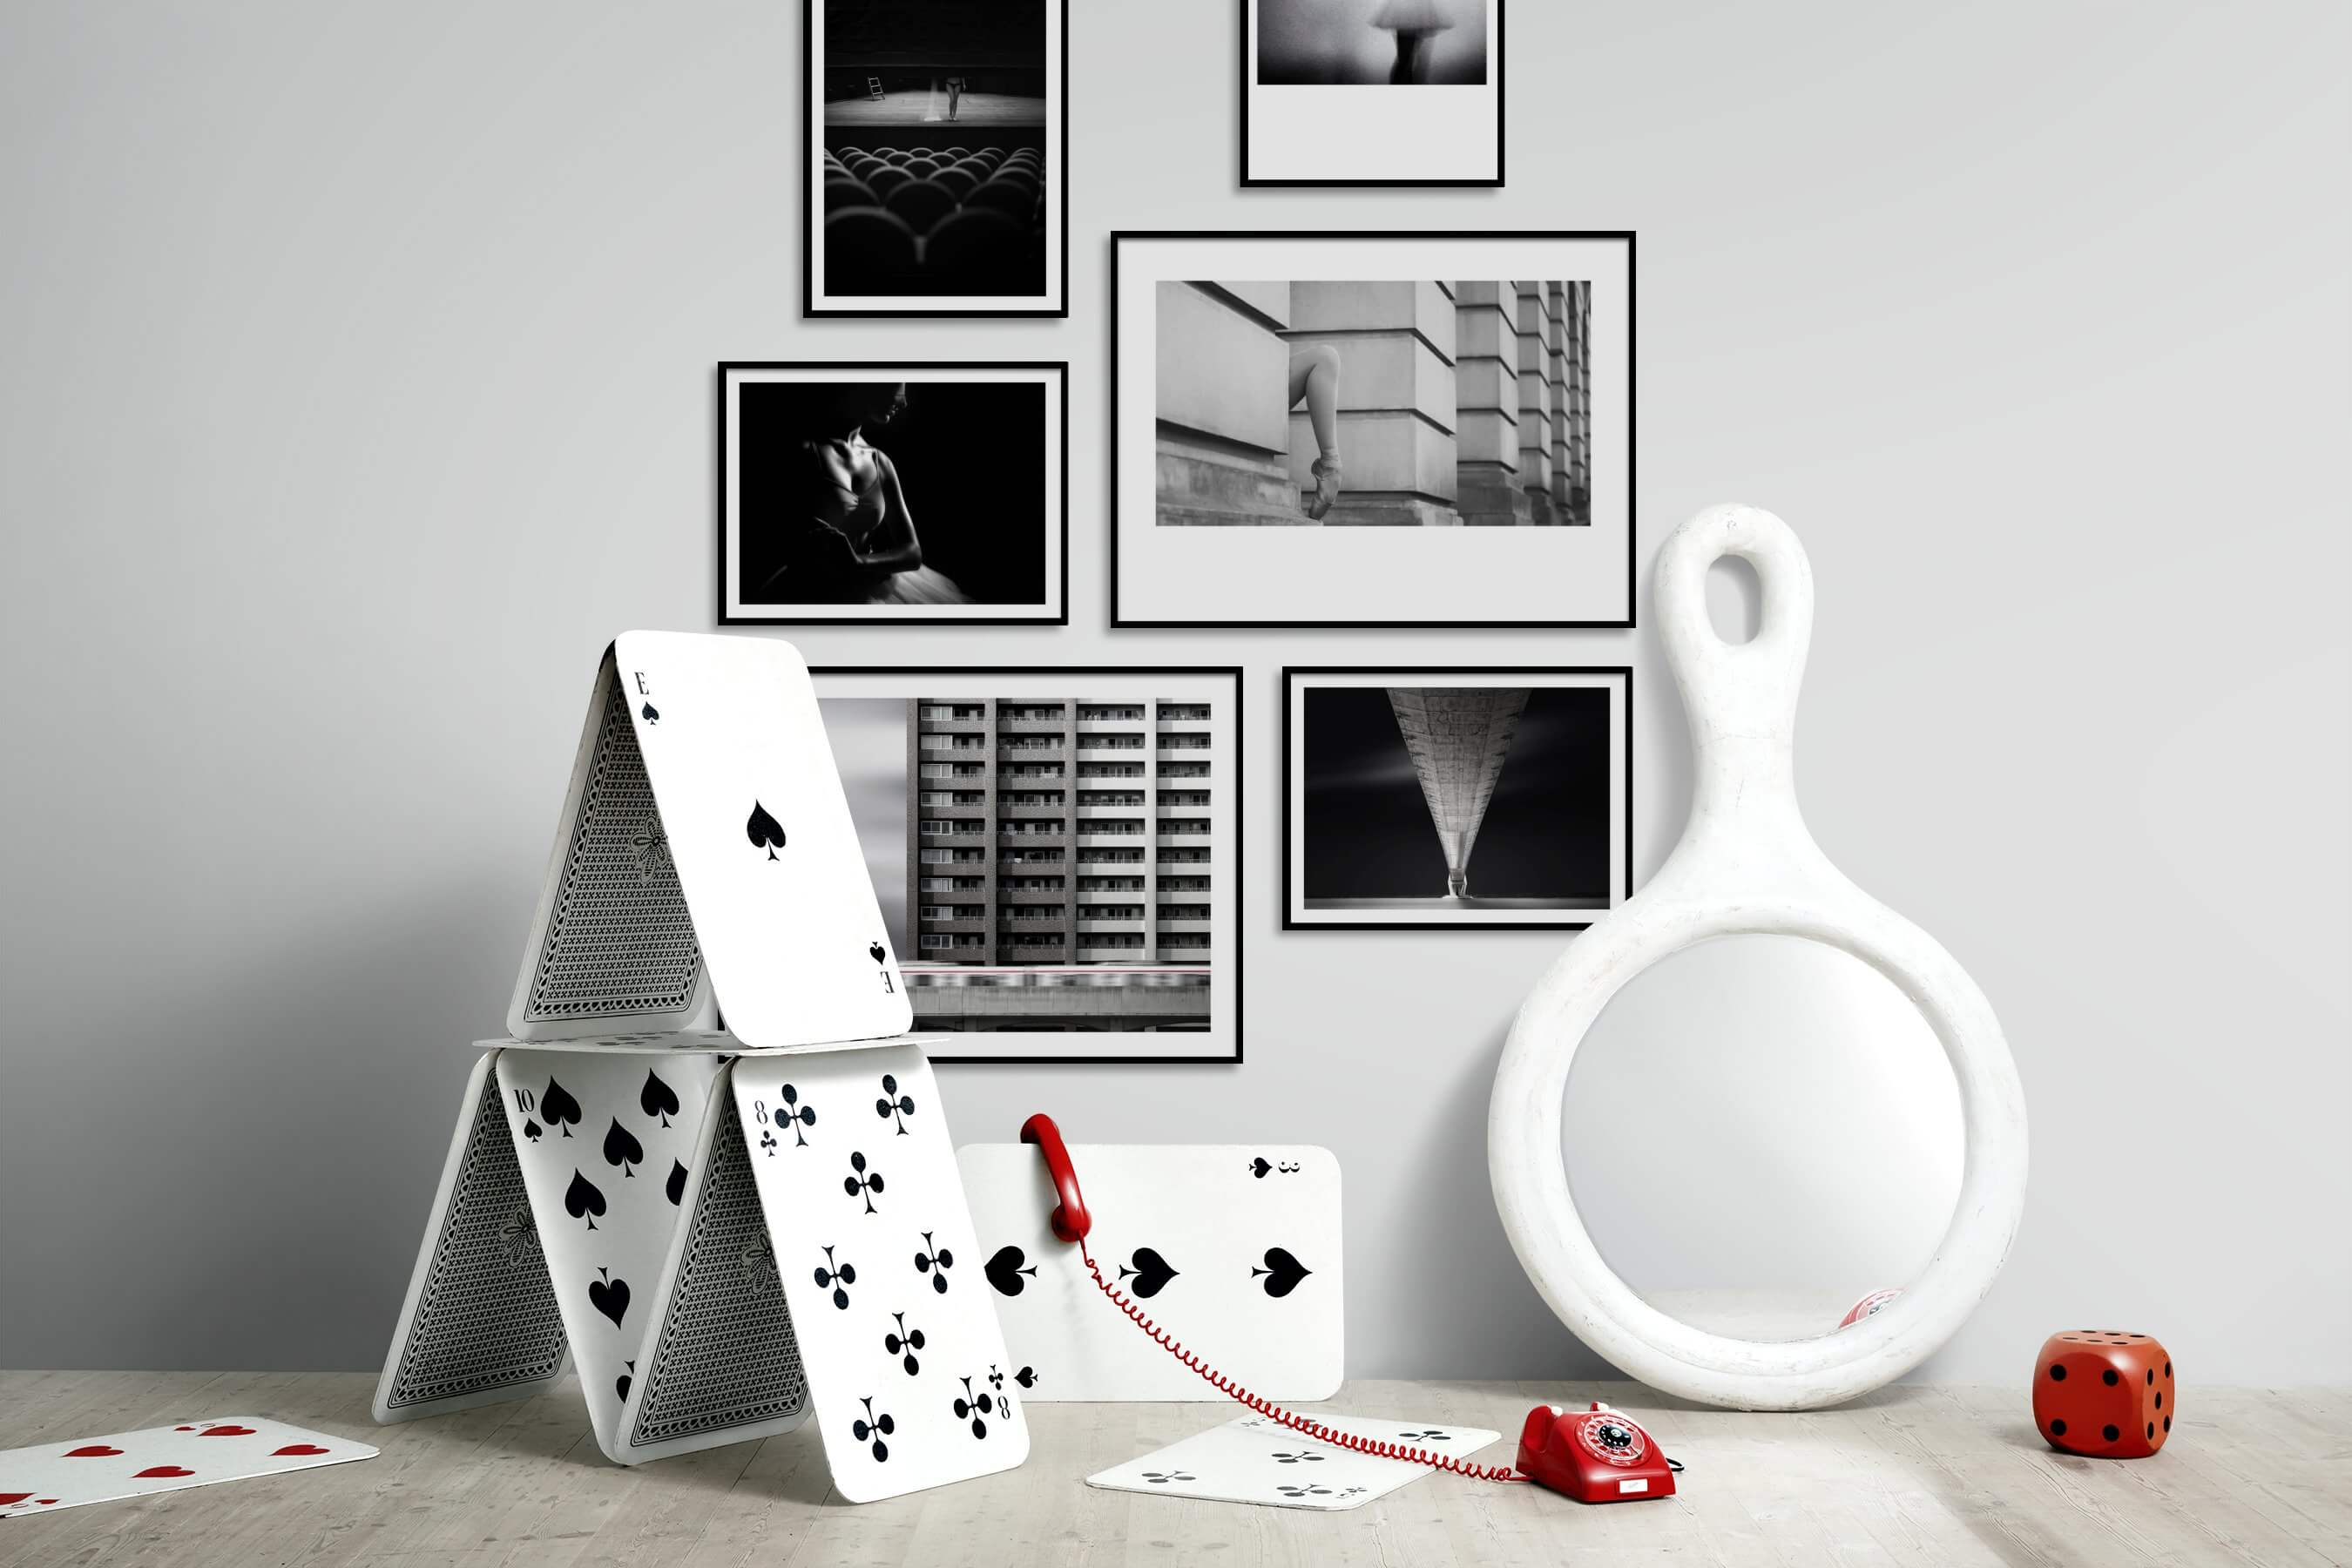 Gallery wall idea with six framed pictures arranged on a wall depicting Artsy, Black & White, For the Moderate, Fashion & Beauty, For the Minimalist, and City Life